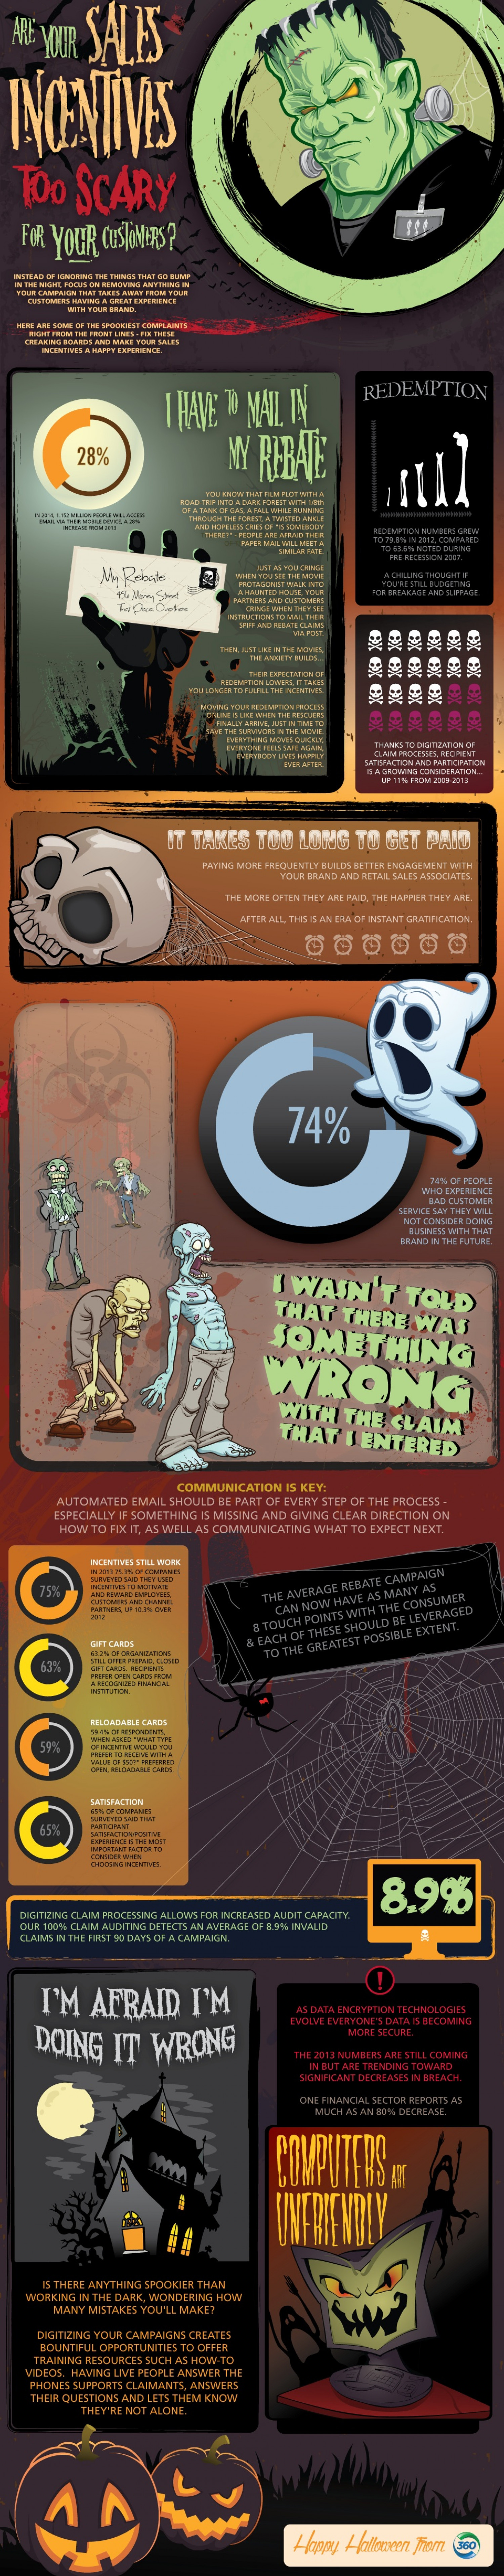 Are Your Sales Incentives Too Scary For Your Customers? Infographic